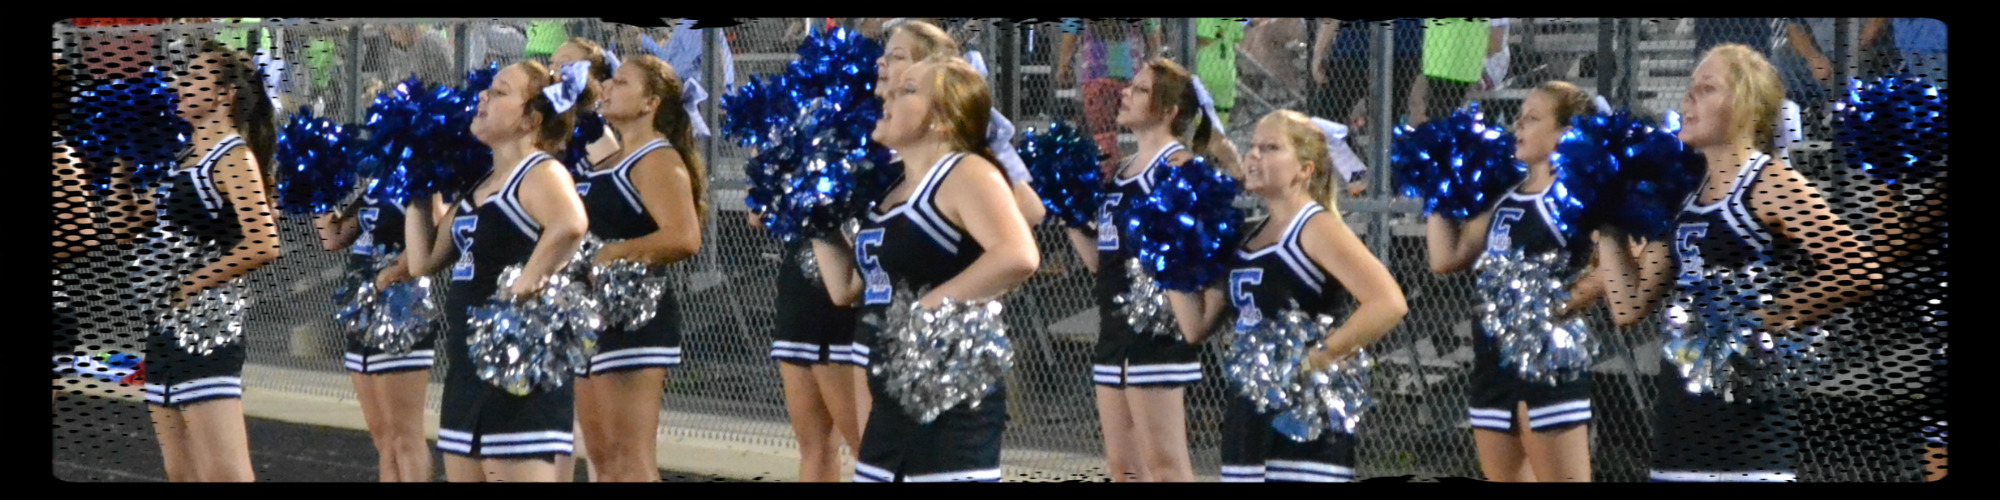 EHHS Cheer